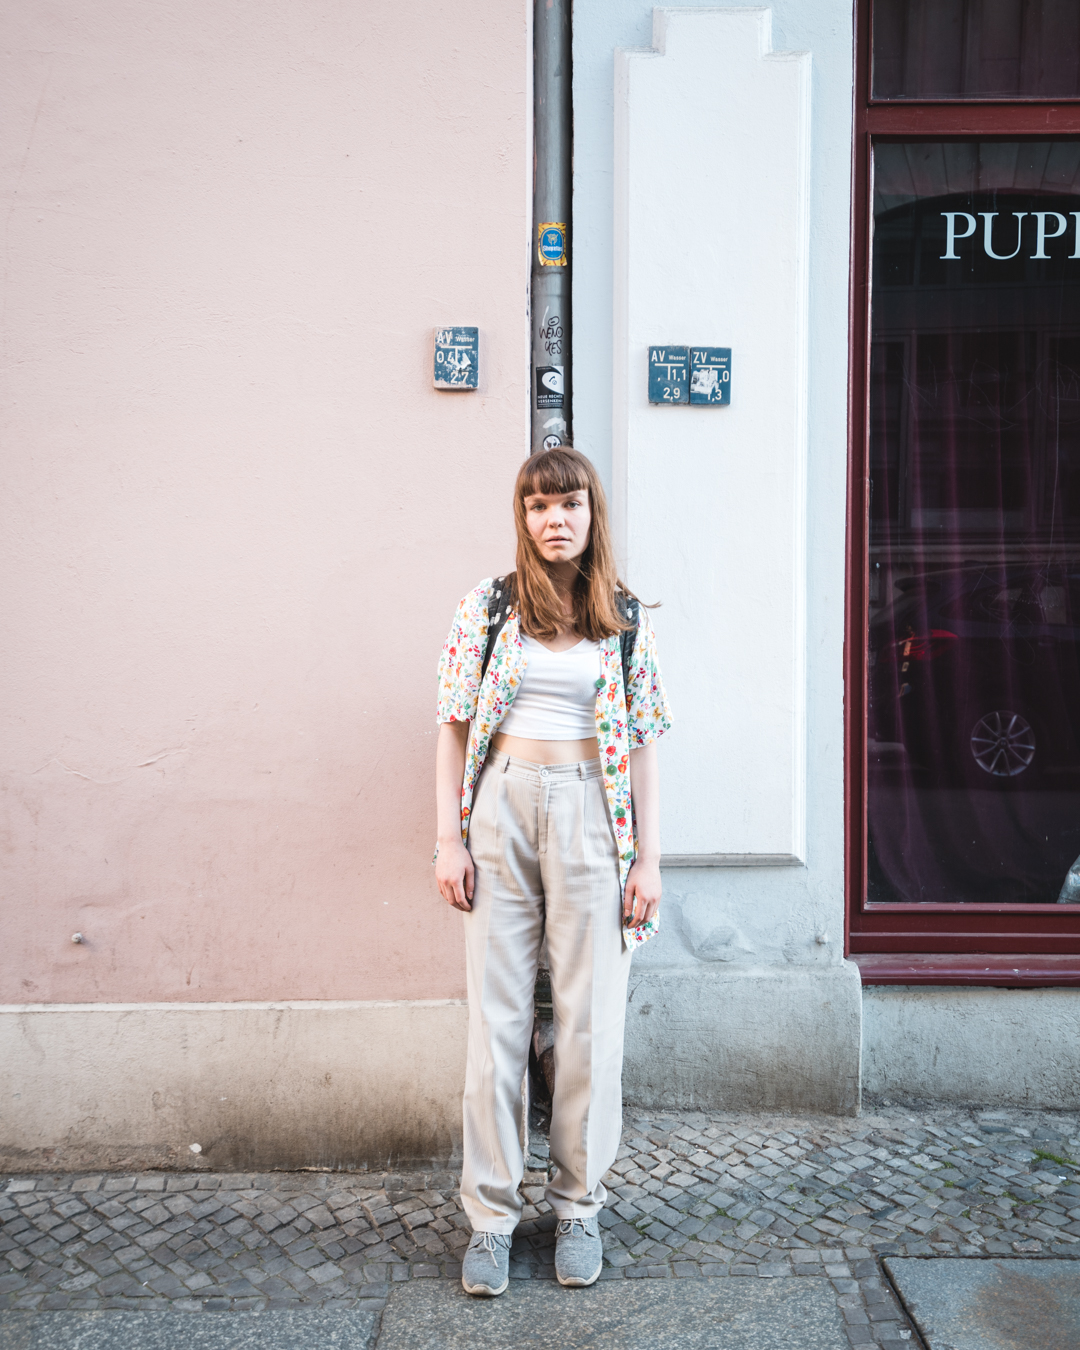 Student Snapshot: Anne-Louise Christiansen on Berlin as Boom or Bust For Creativity